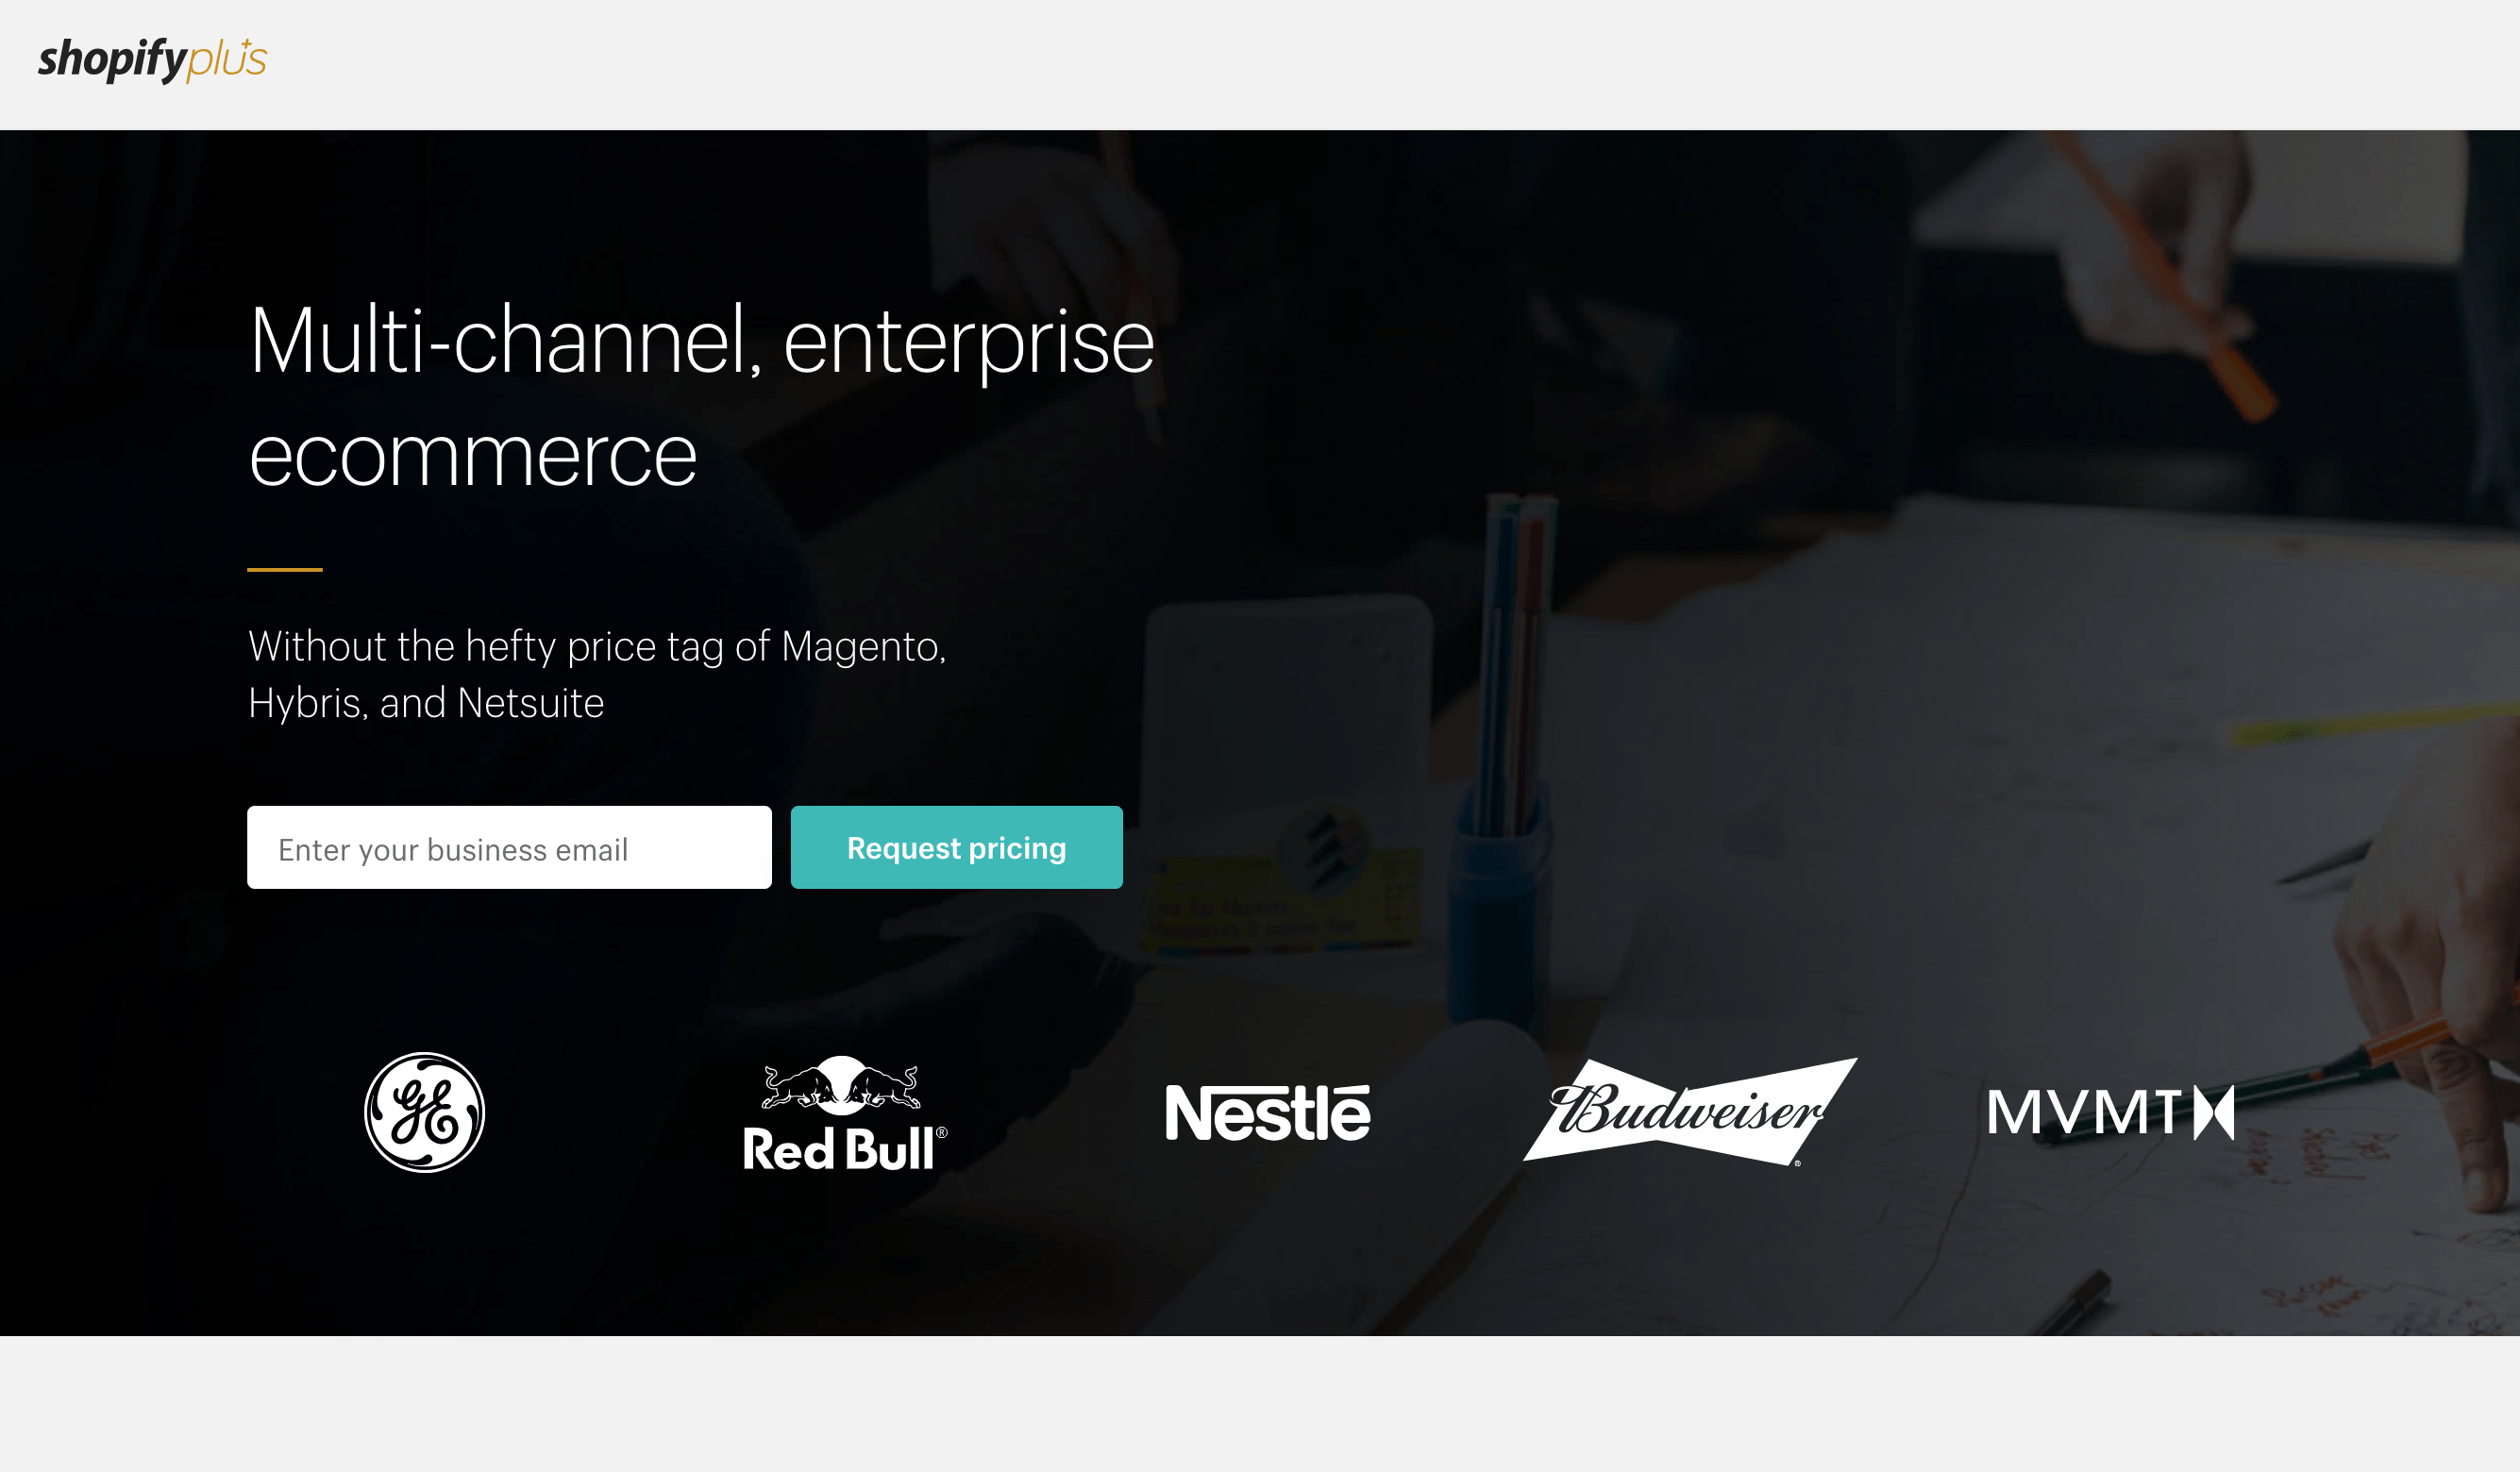 Screen shot showing 2019 version of the Shopify Plus home page